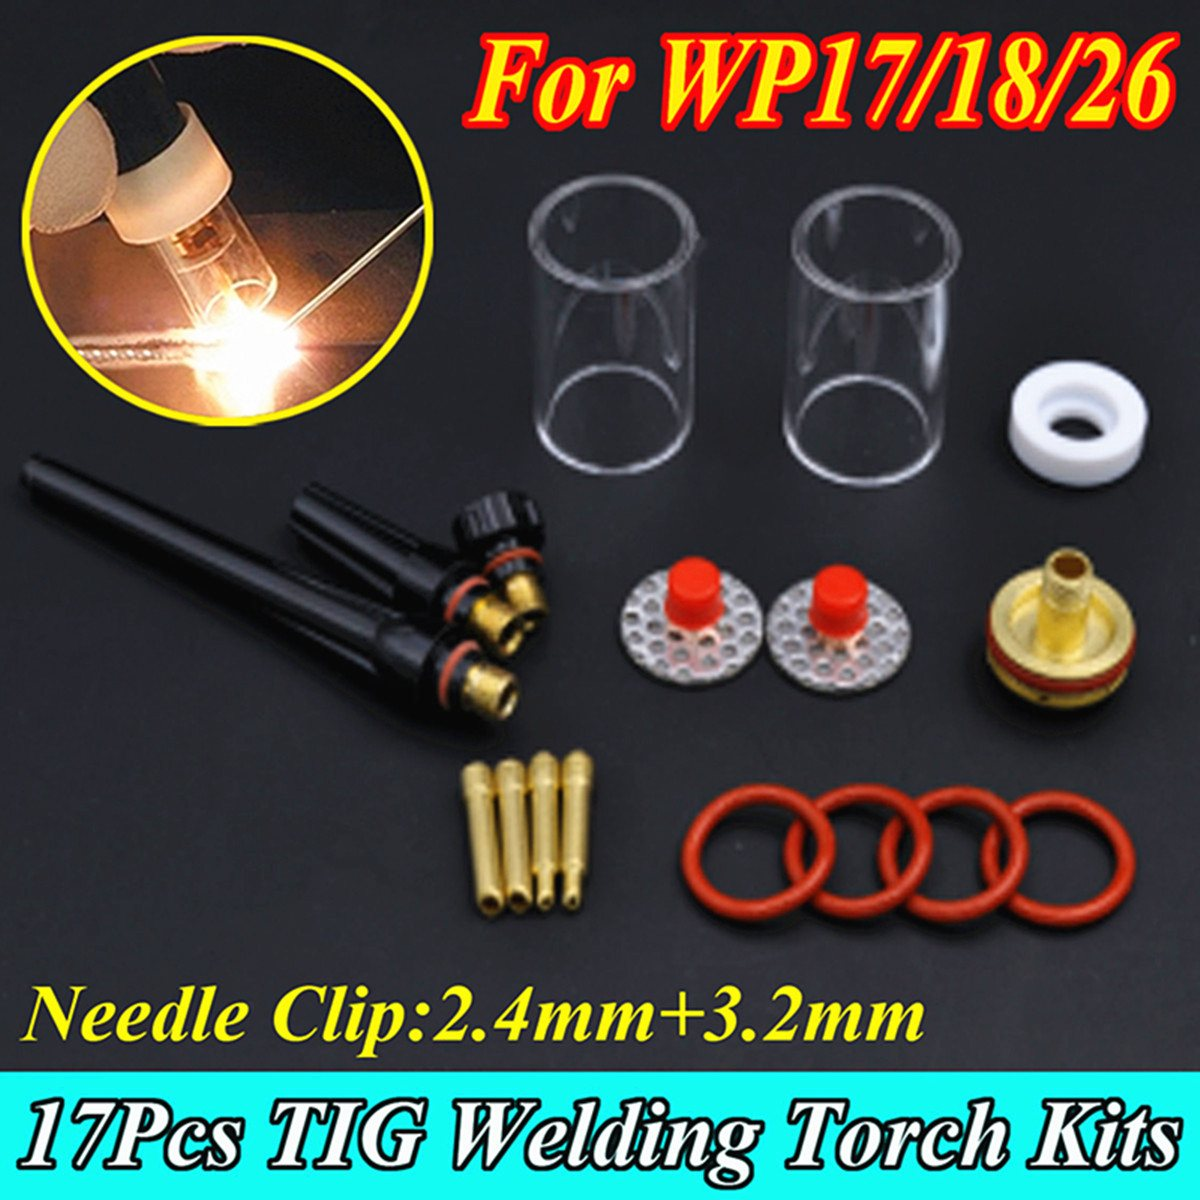 New 17PCS TIG Welding Torch Gas Lens Pyrex Glass Cup Stubby Collet FOR WP-17/18/26 Series Welding Accessories wp 17f sr 17f tig welding torch complete 17feet 5meter soldering iron flexible